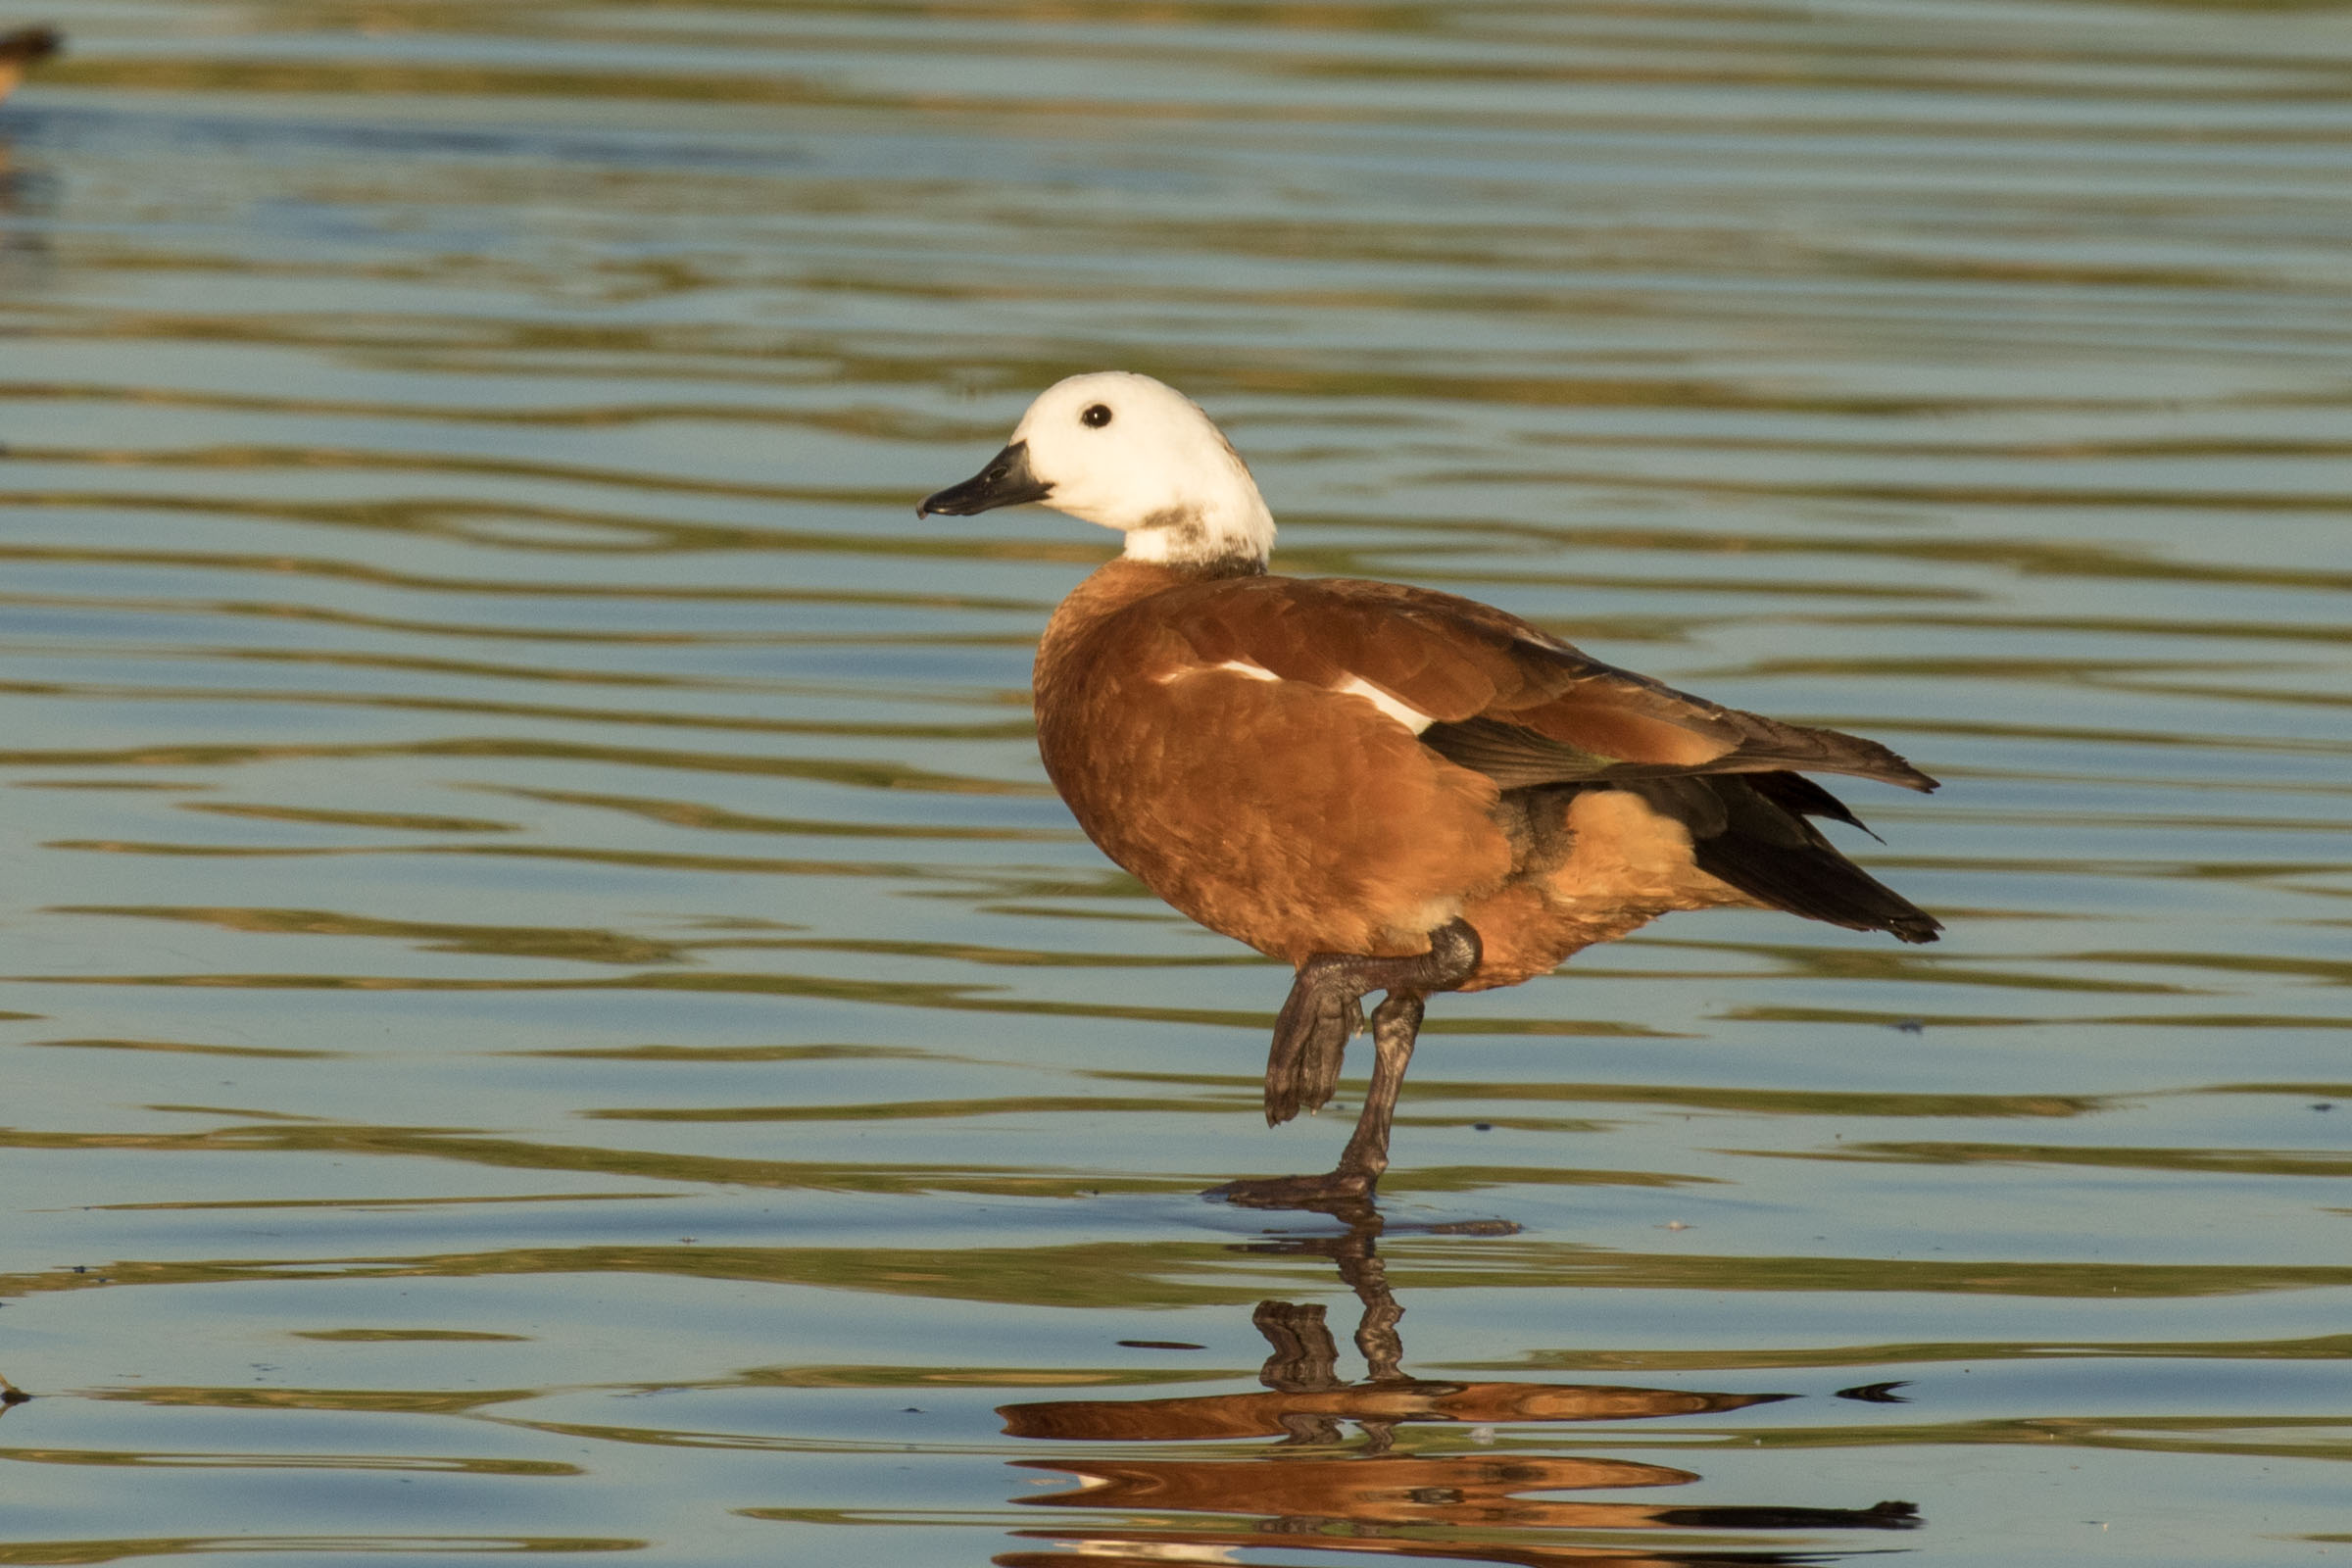 South African Shelduck, which we see on our South Africa tours and Namibia & Botswana tours. Photo by Josh Engel.